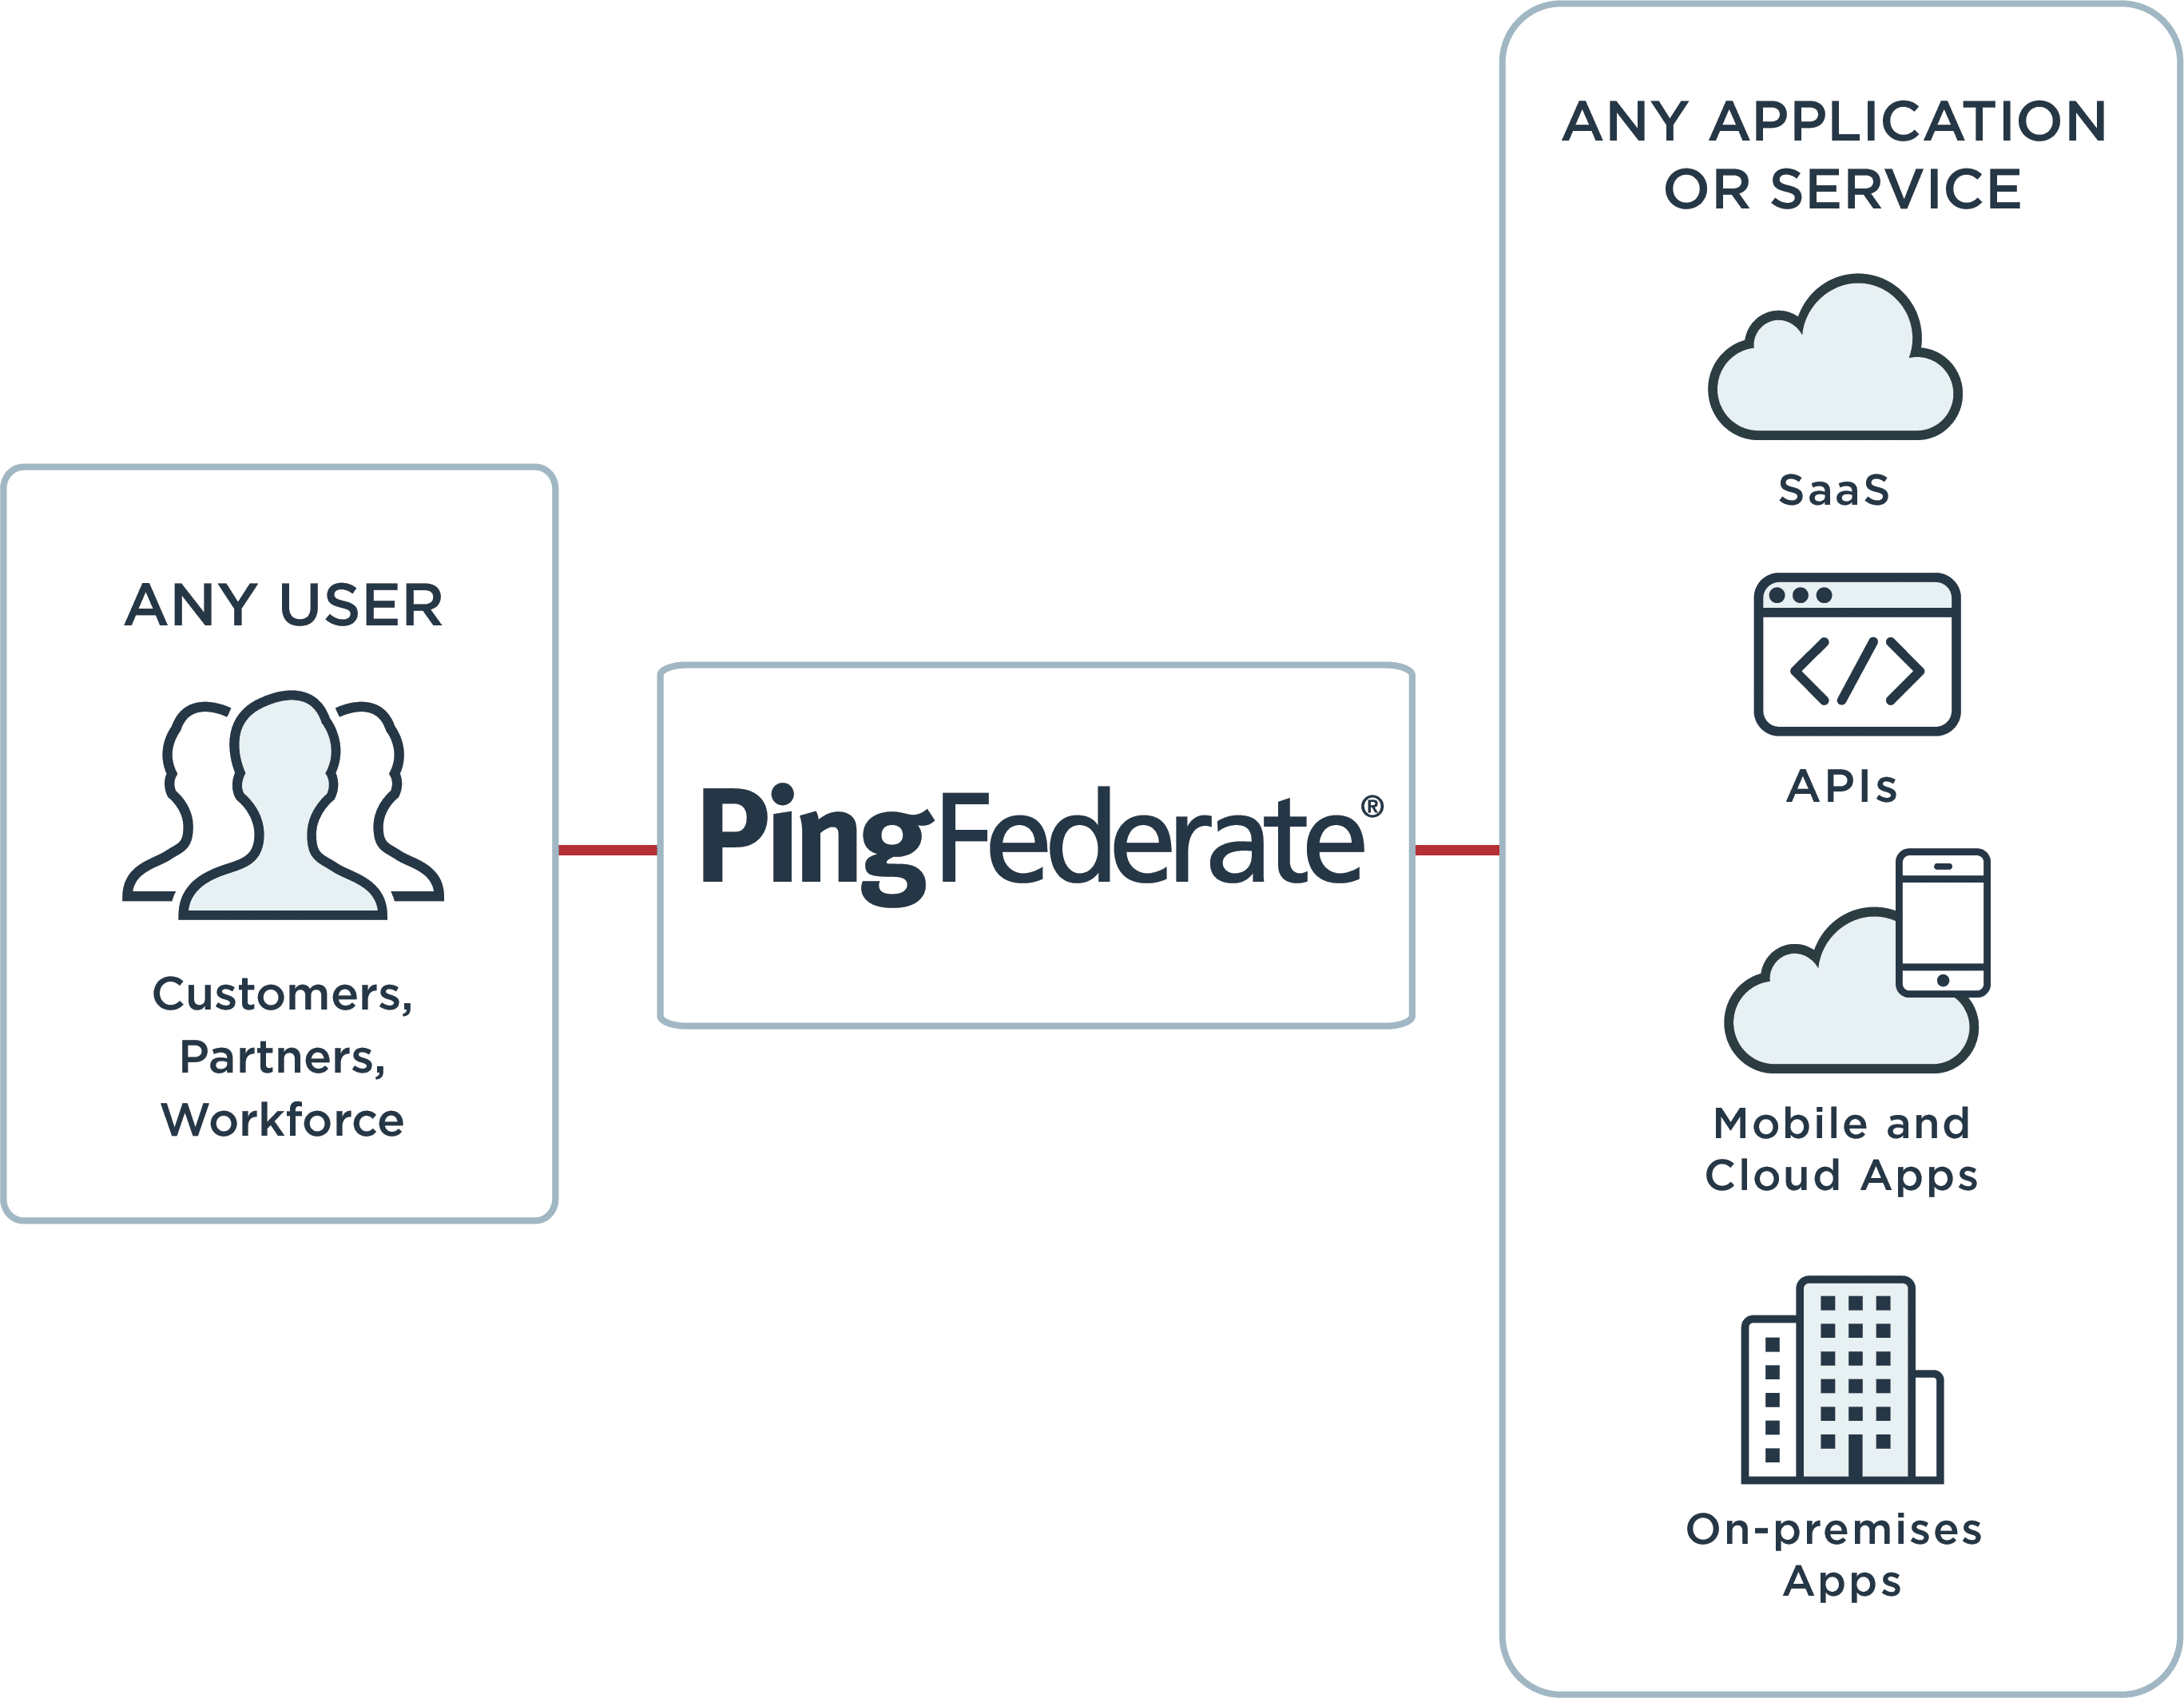 Using PingFederate, any user can connect to any application or service.